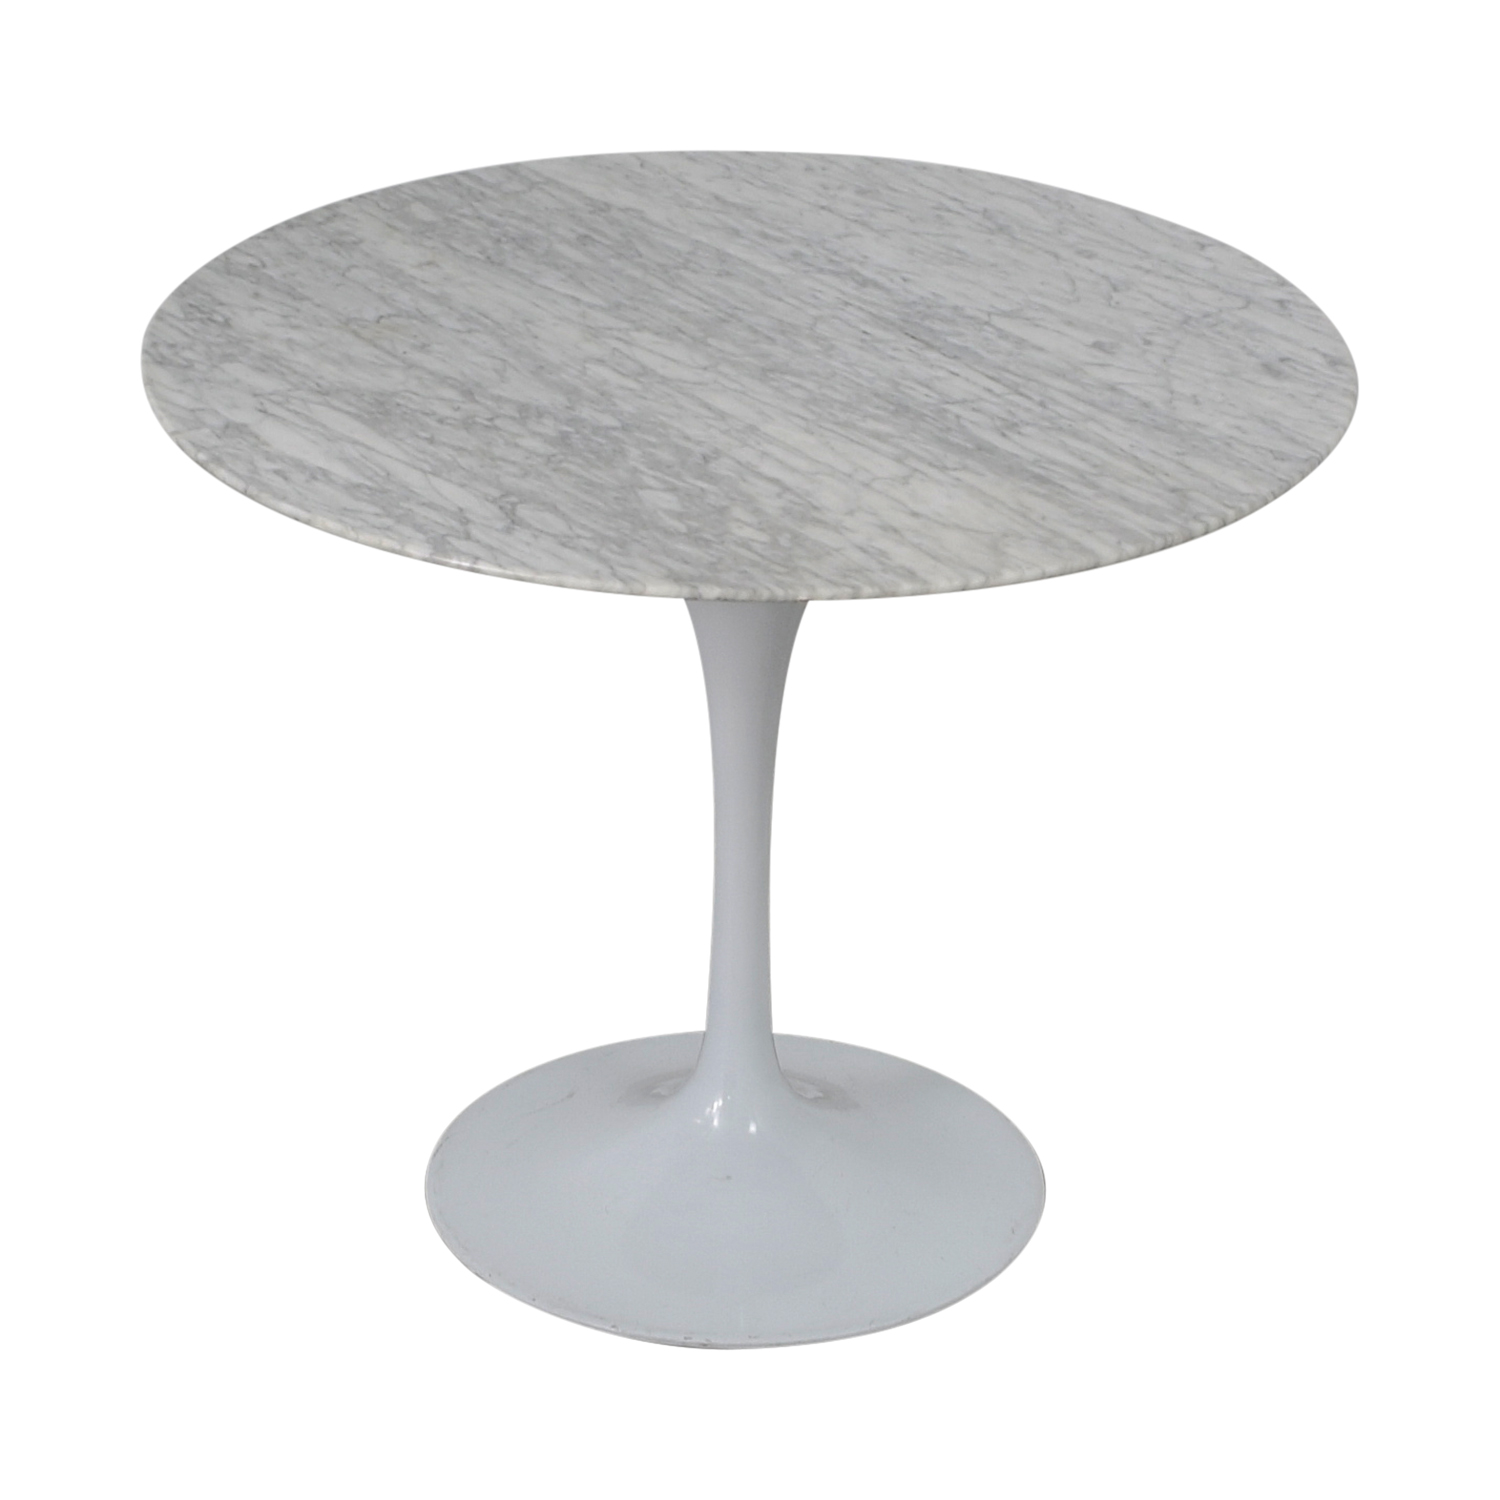 Knoll Knoll Saarinen with Carrara Marble Dining Table on sale